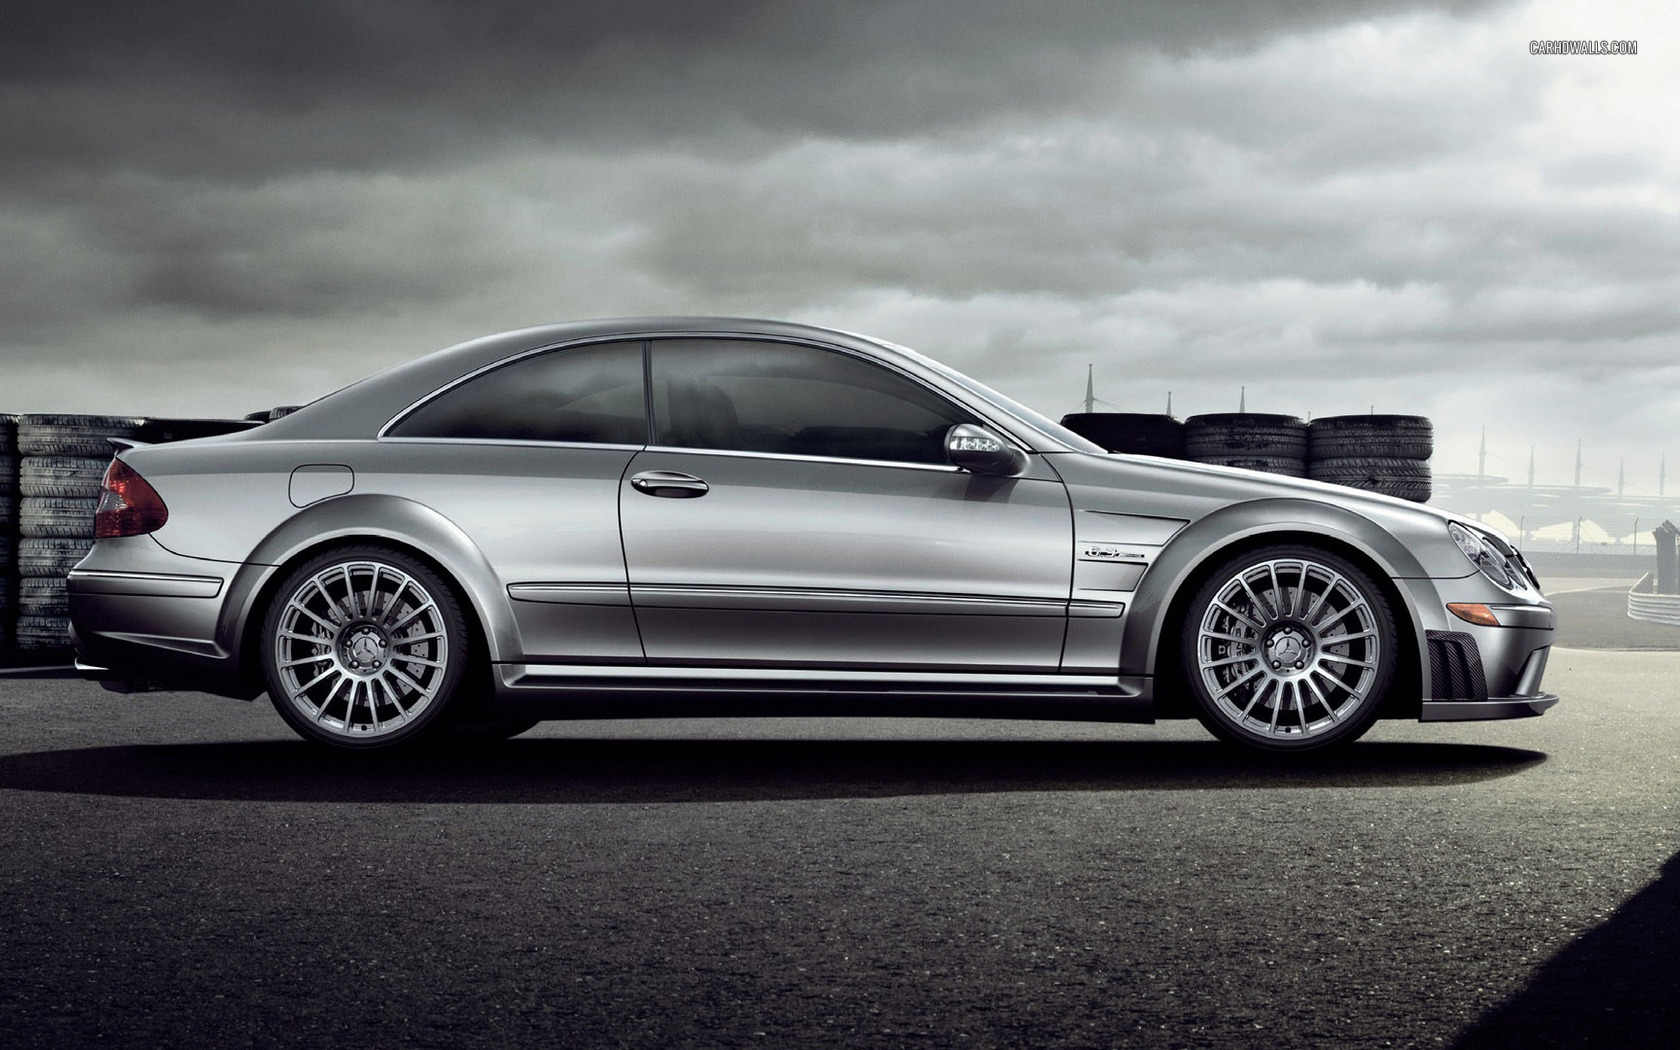 Mercedes-Benz CLK #11